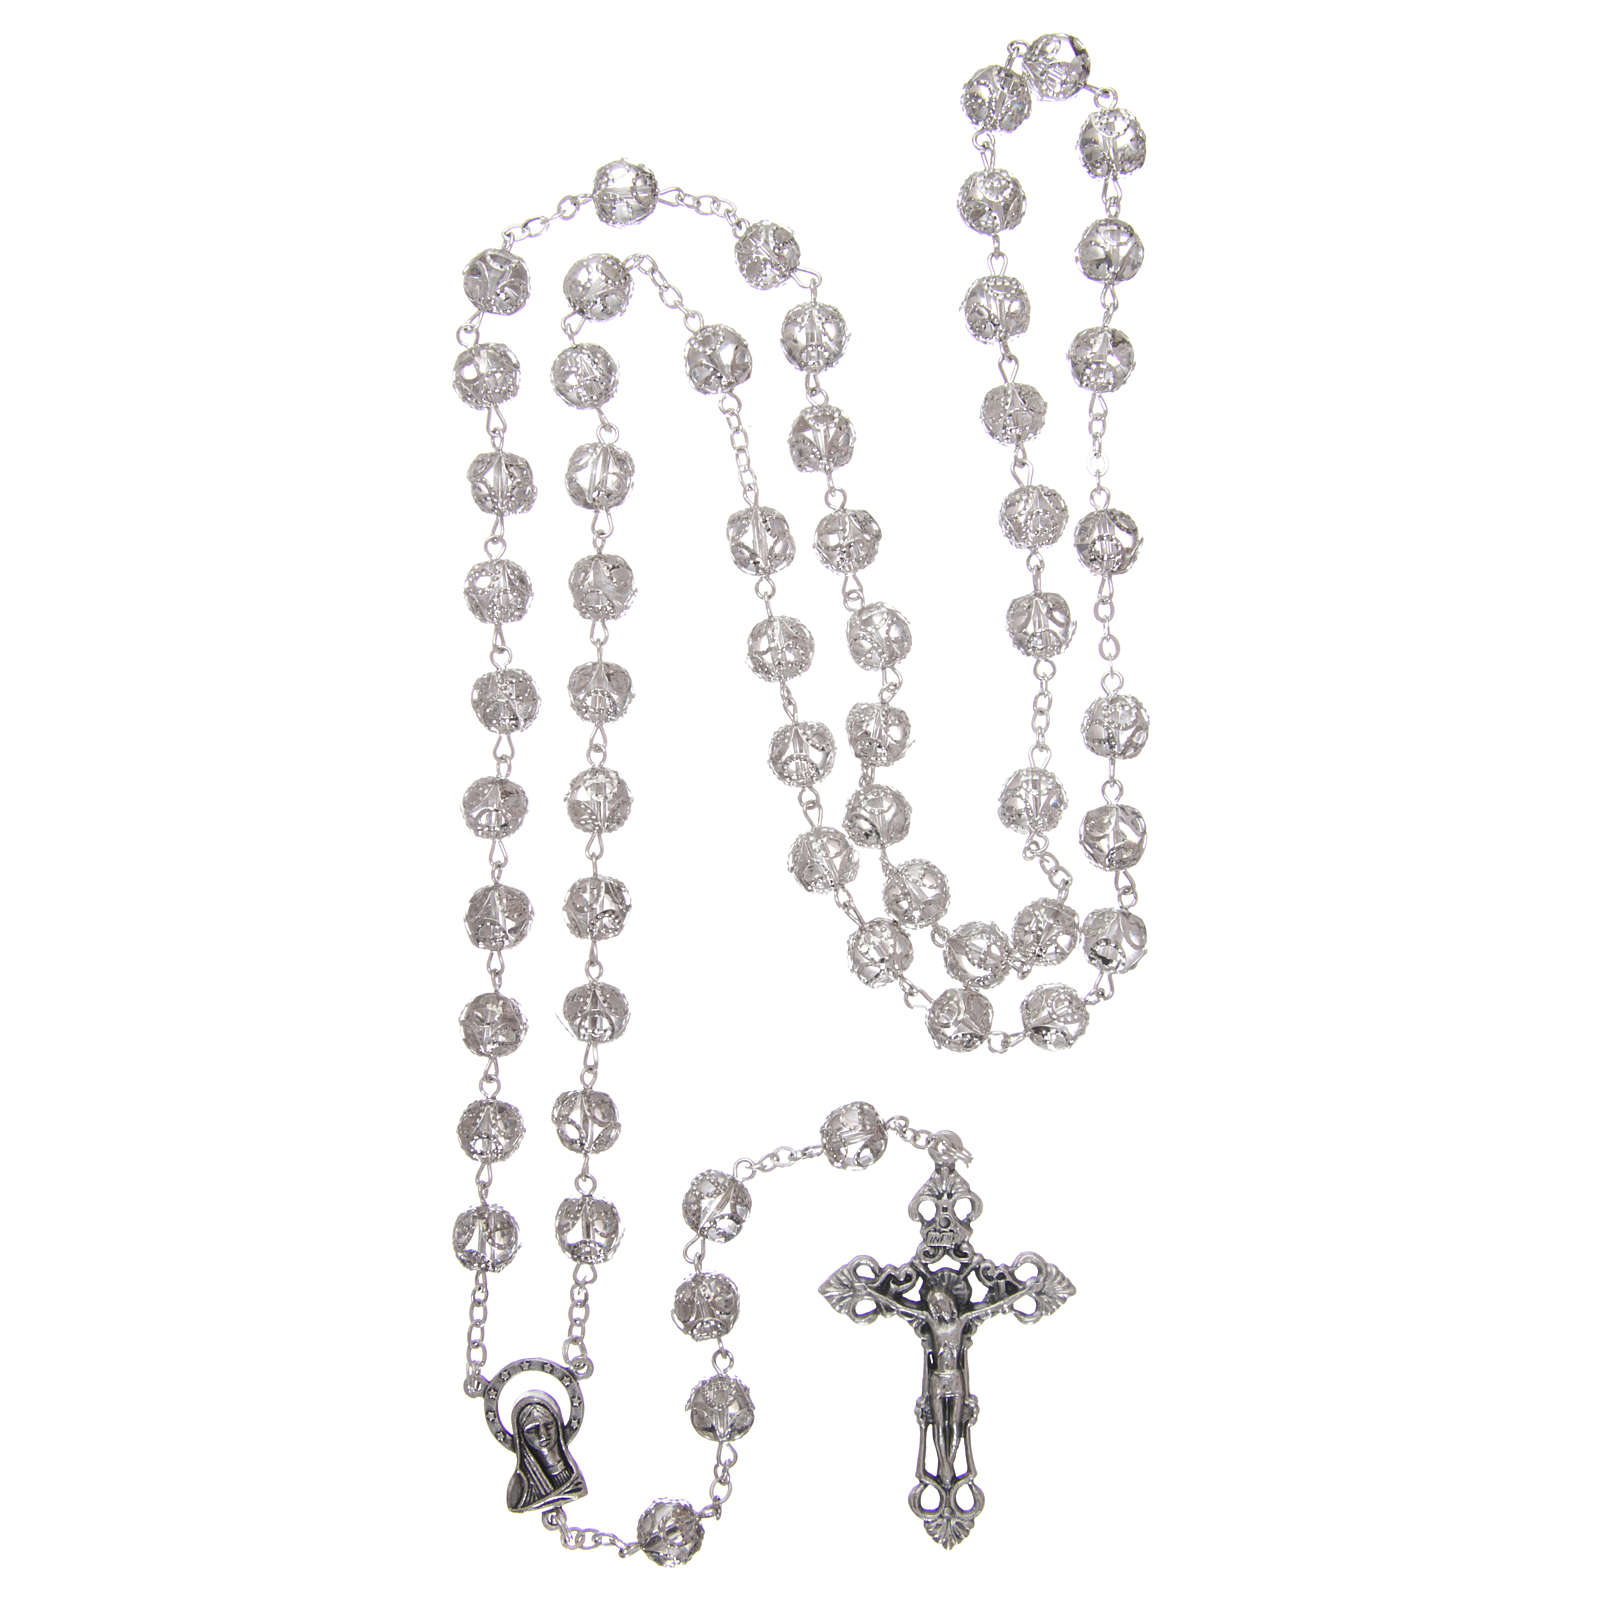 Rosary in glass 7x6 mm grains, transparent 4